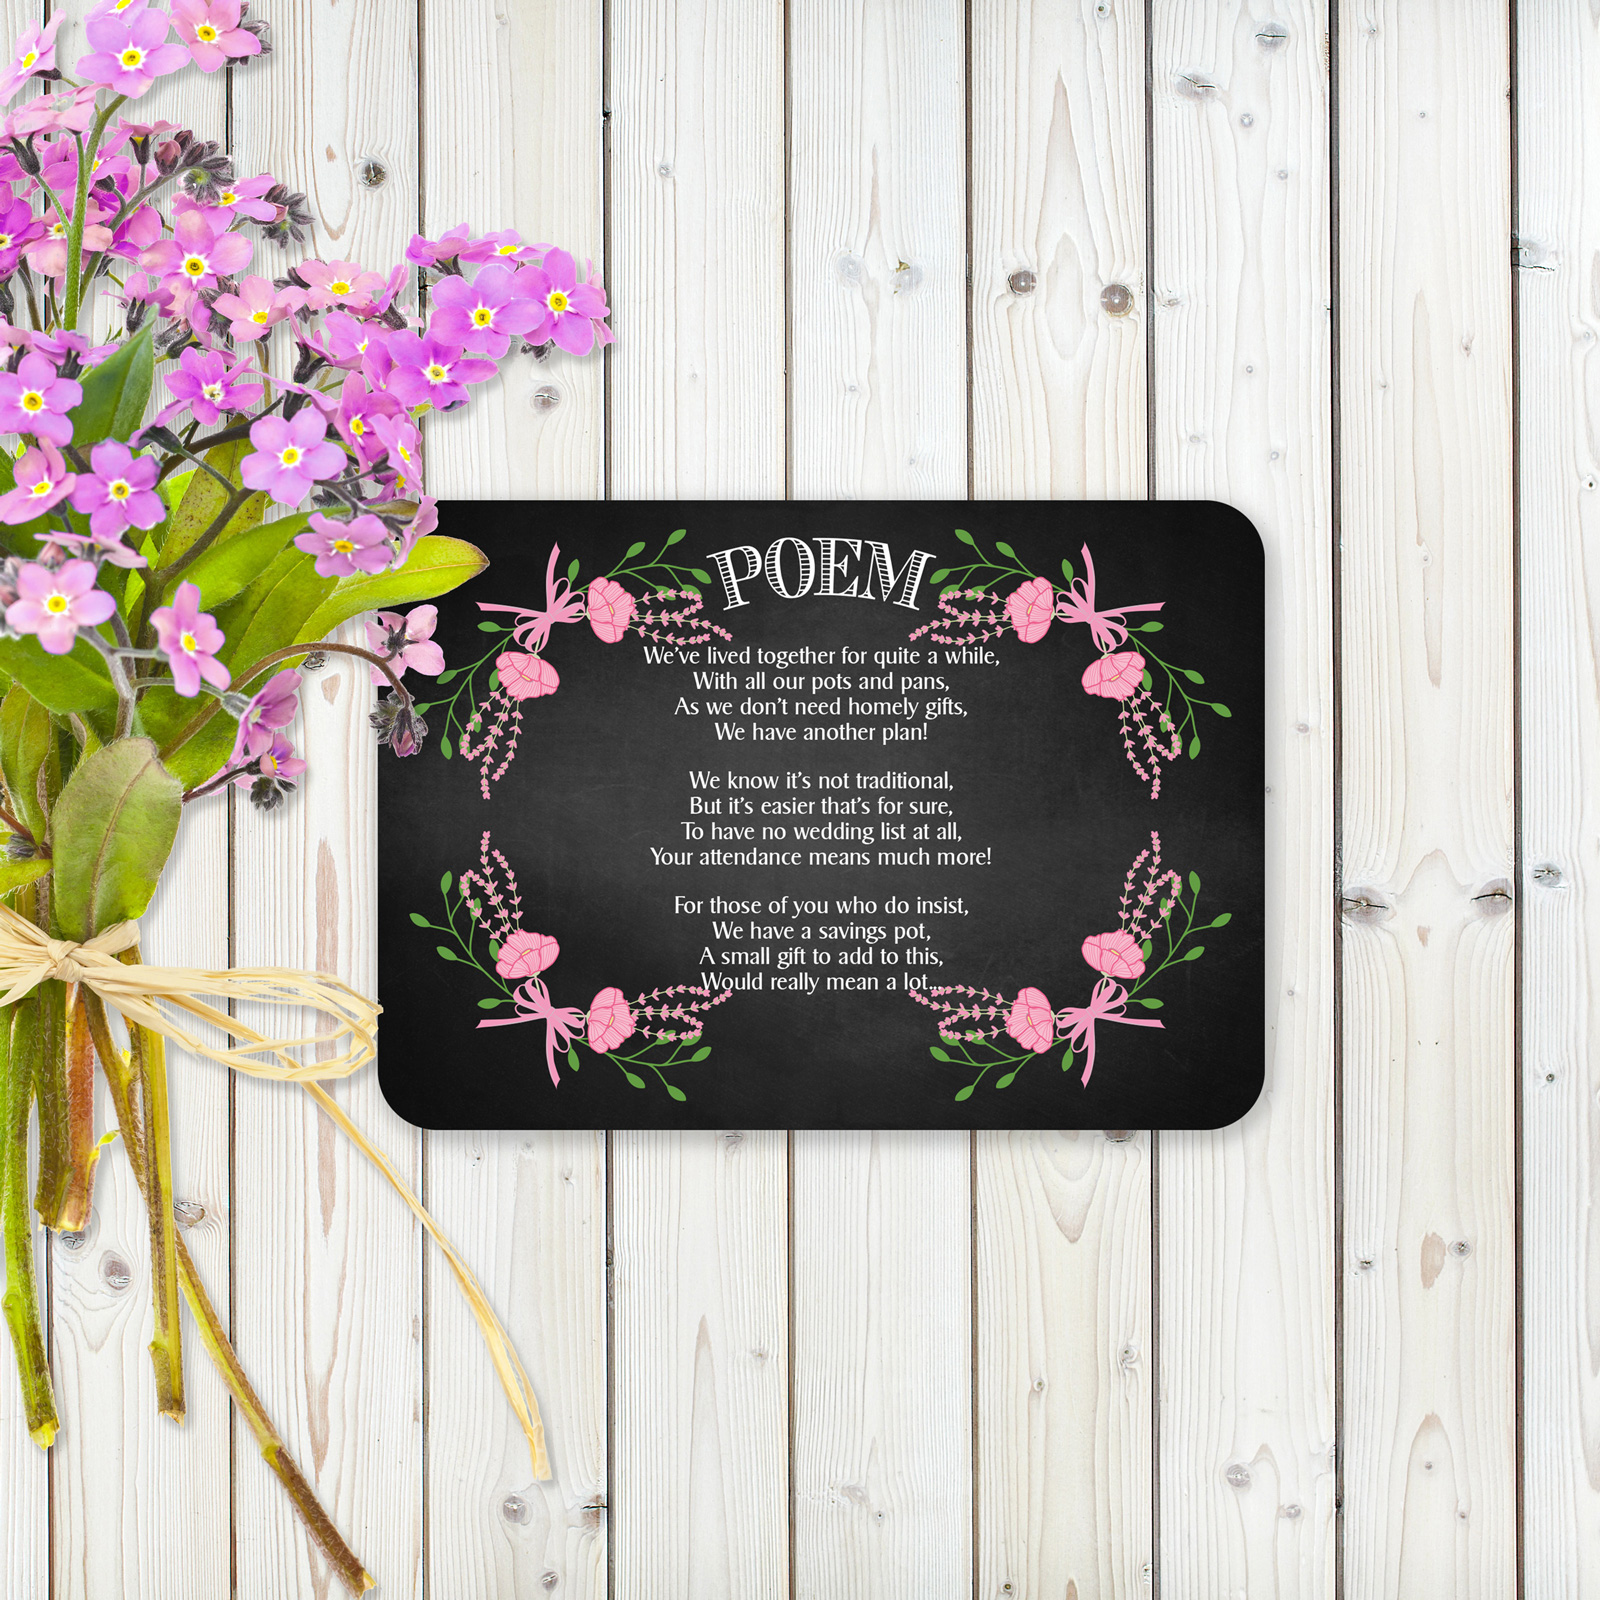 Floral Fantasy Pink on Chalkboard - Poem Card